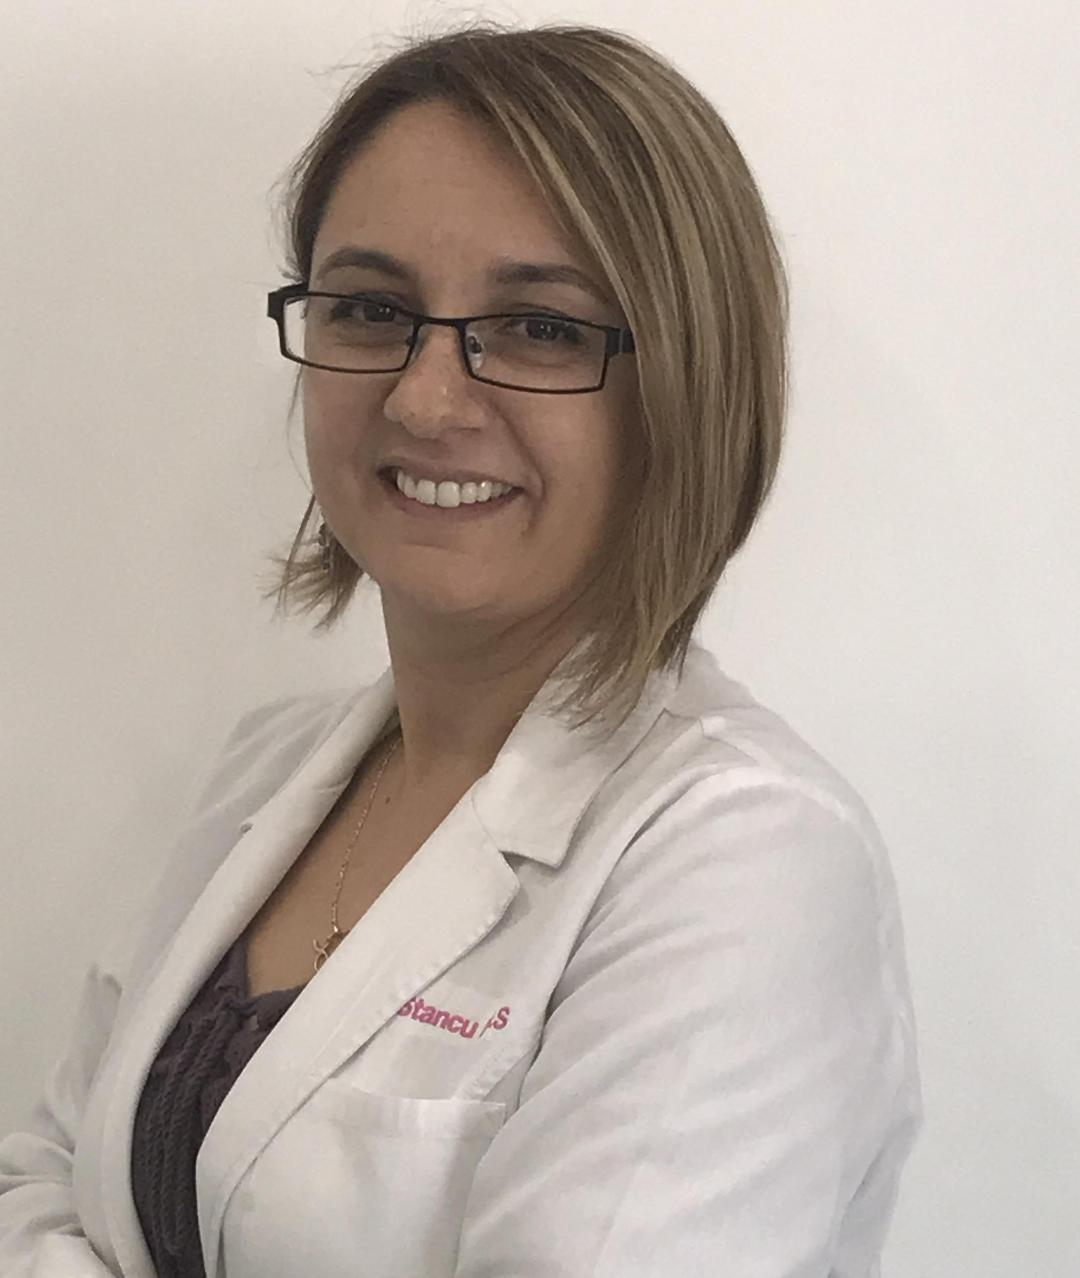 Dr. Livia Stancu DDS serving northeast philadelphia region in dental care